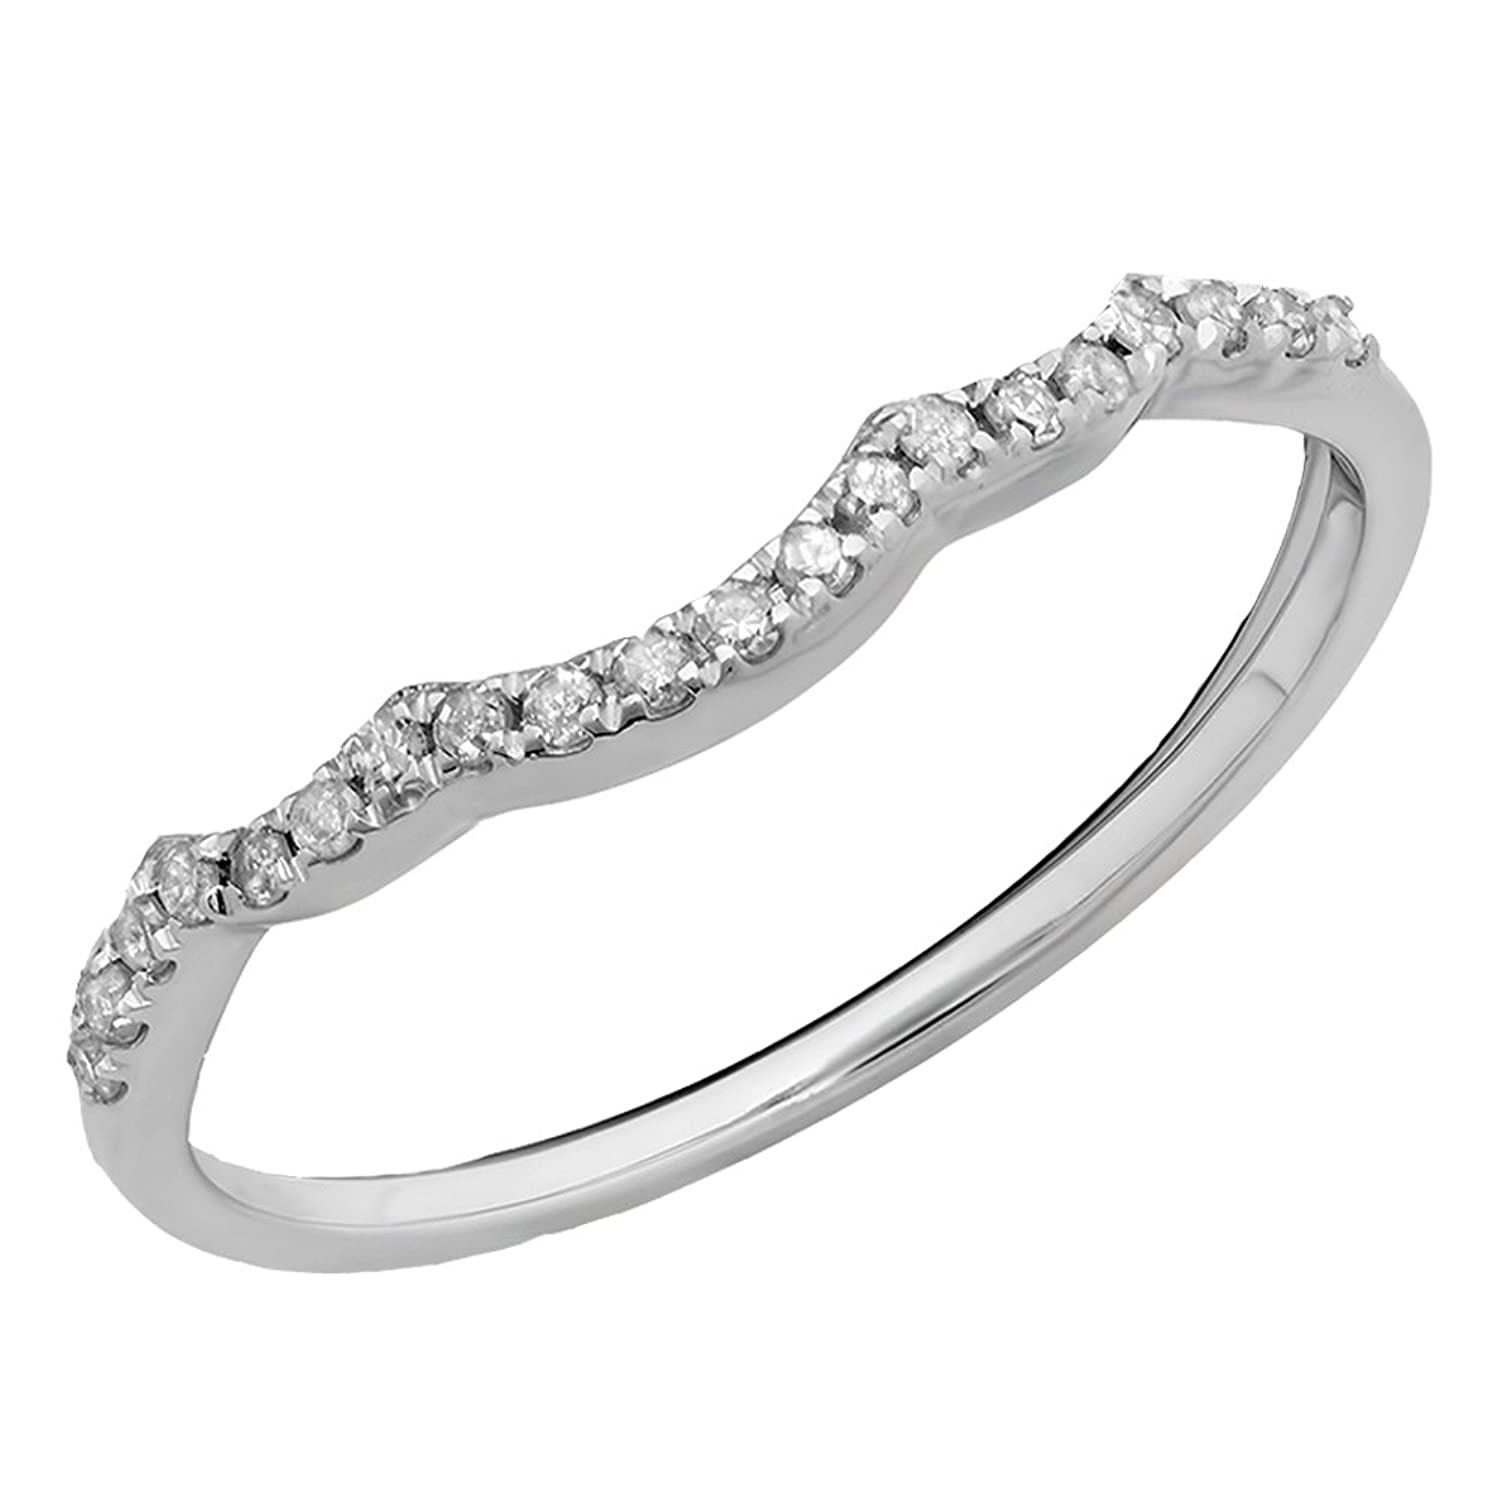 0.12 Carat (ctw) 10K Gold Round Cut Diamond Ladies Stackable Wedding Contour Band Guard Ring 1/10 CT